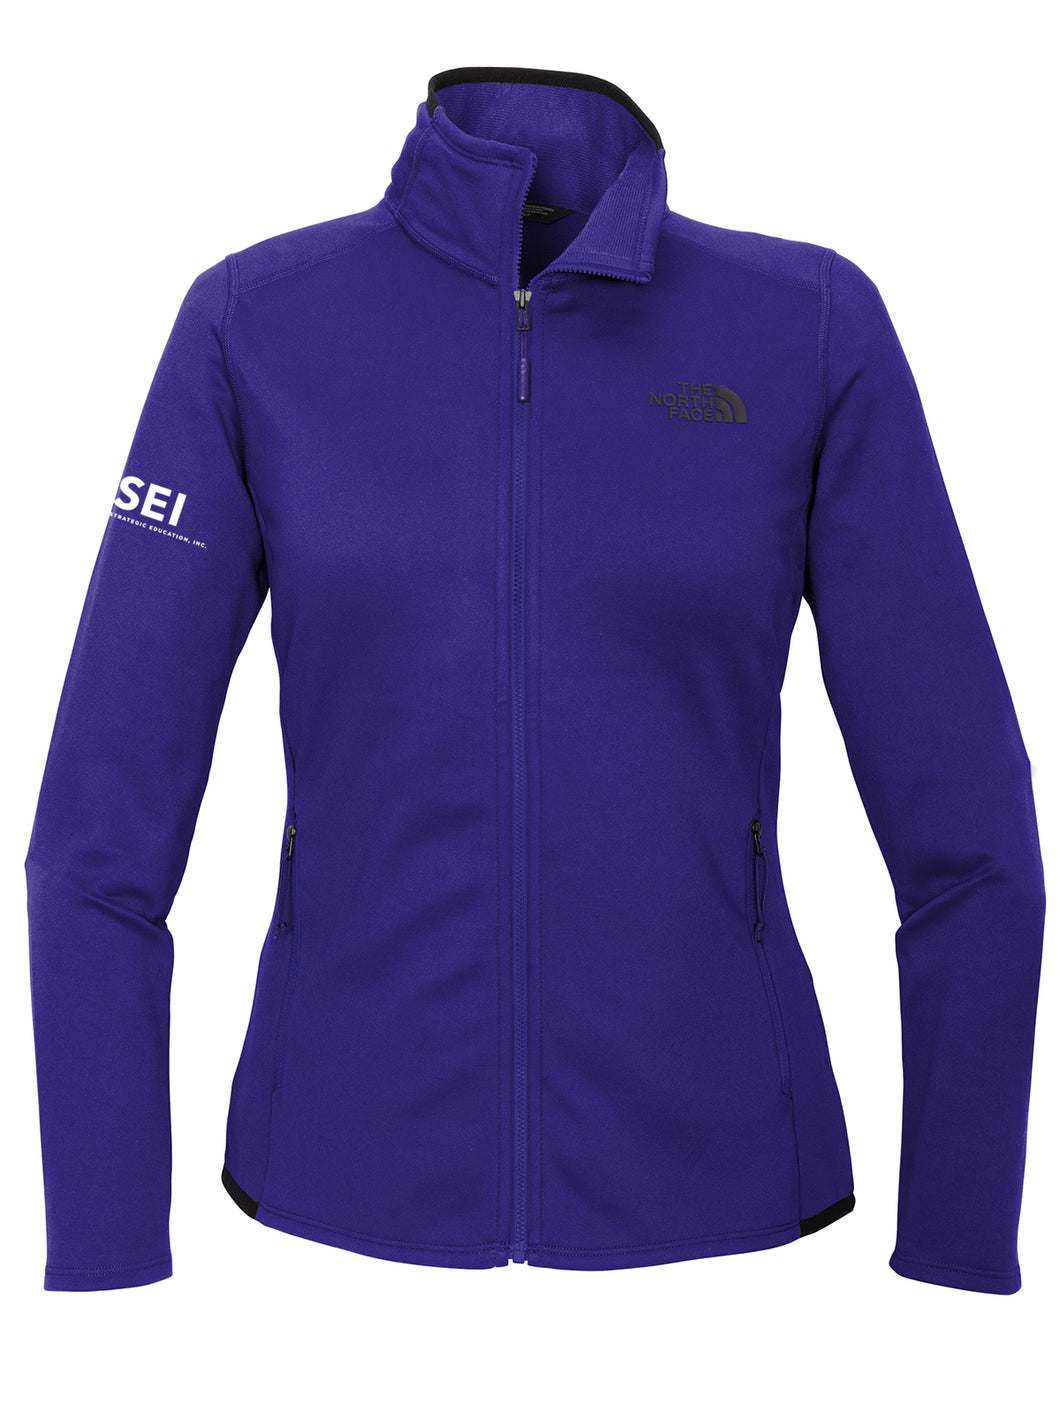 SEI The North Face ® Ladies Skyline Full-Zip Fleece Jacket